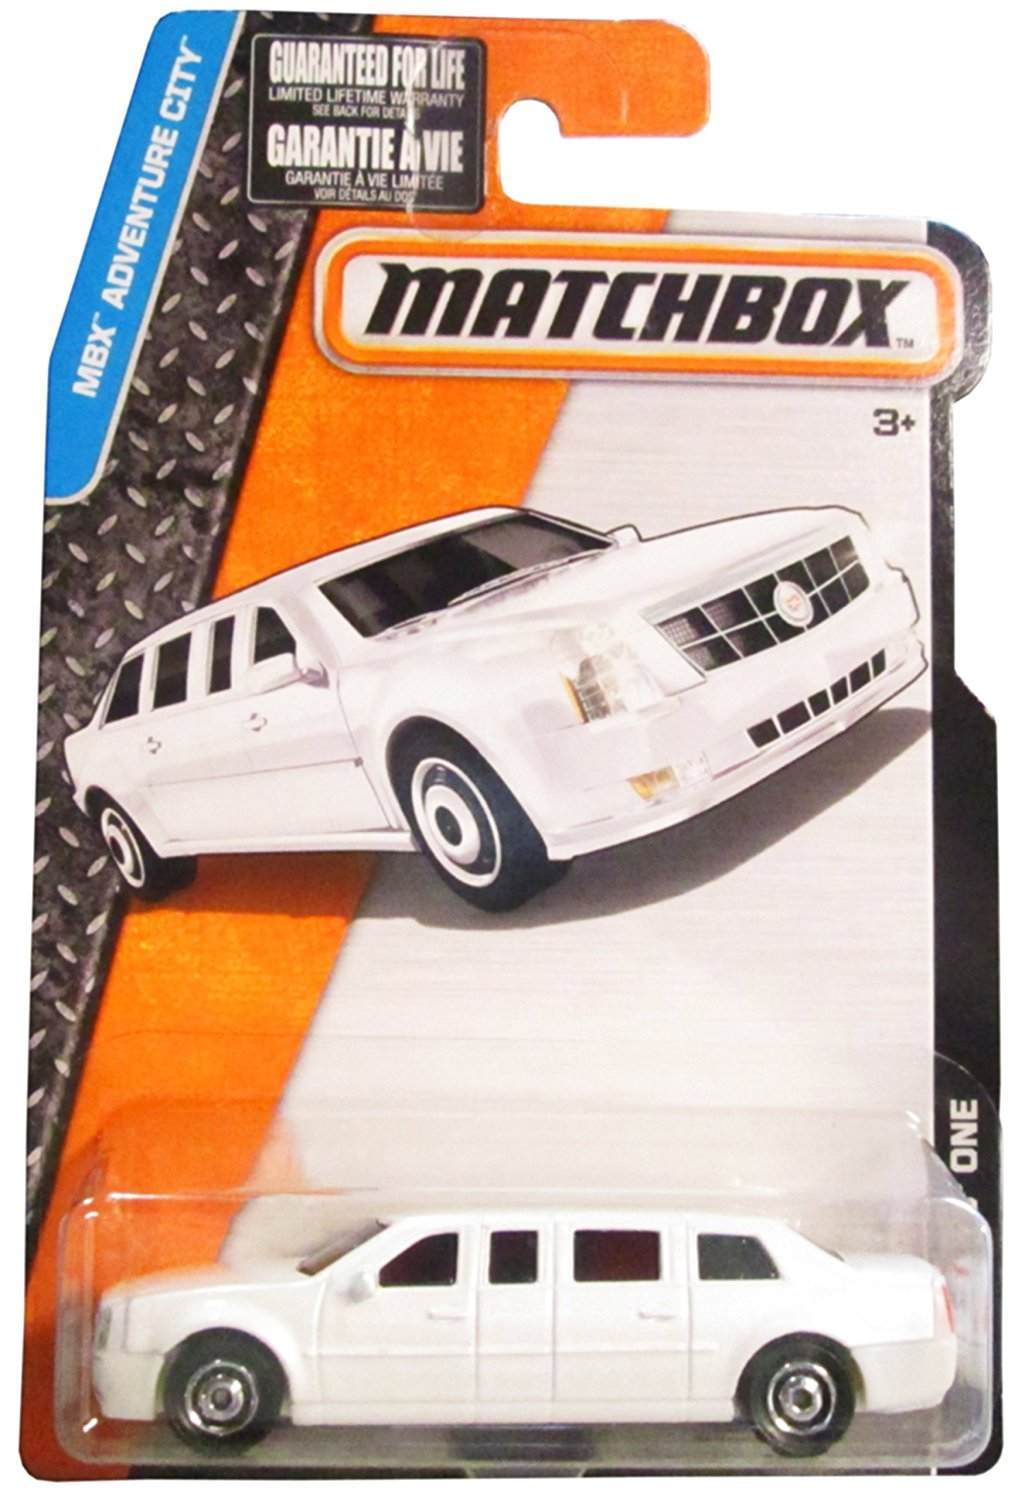 Matchbox, 2017 MBX Adventure City, Cadillac One Limo [White] 10/125